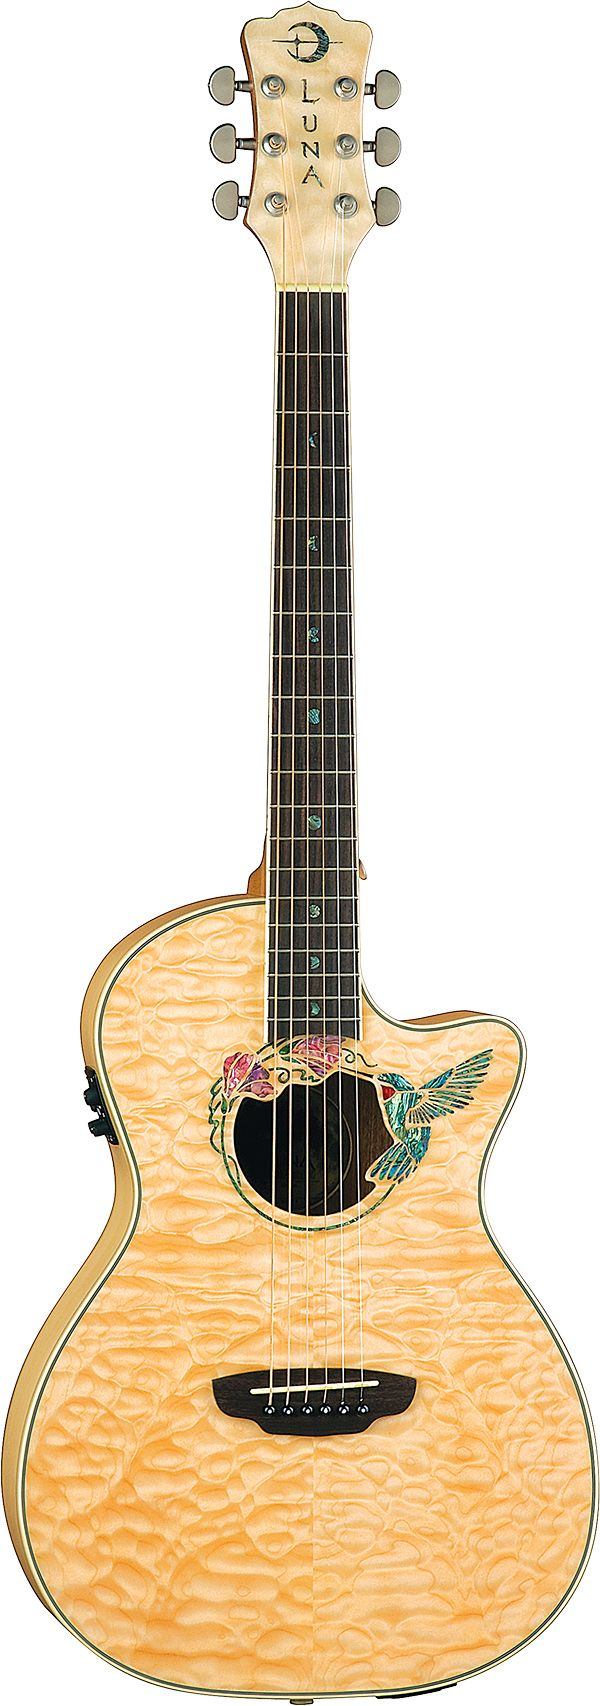 Luna Guitars - Fauna Hummingbird - acoustic electric guitar